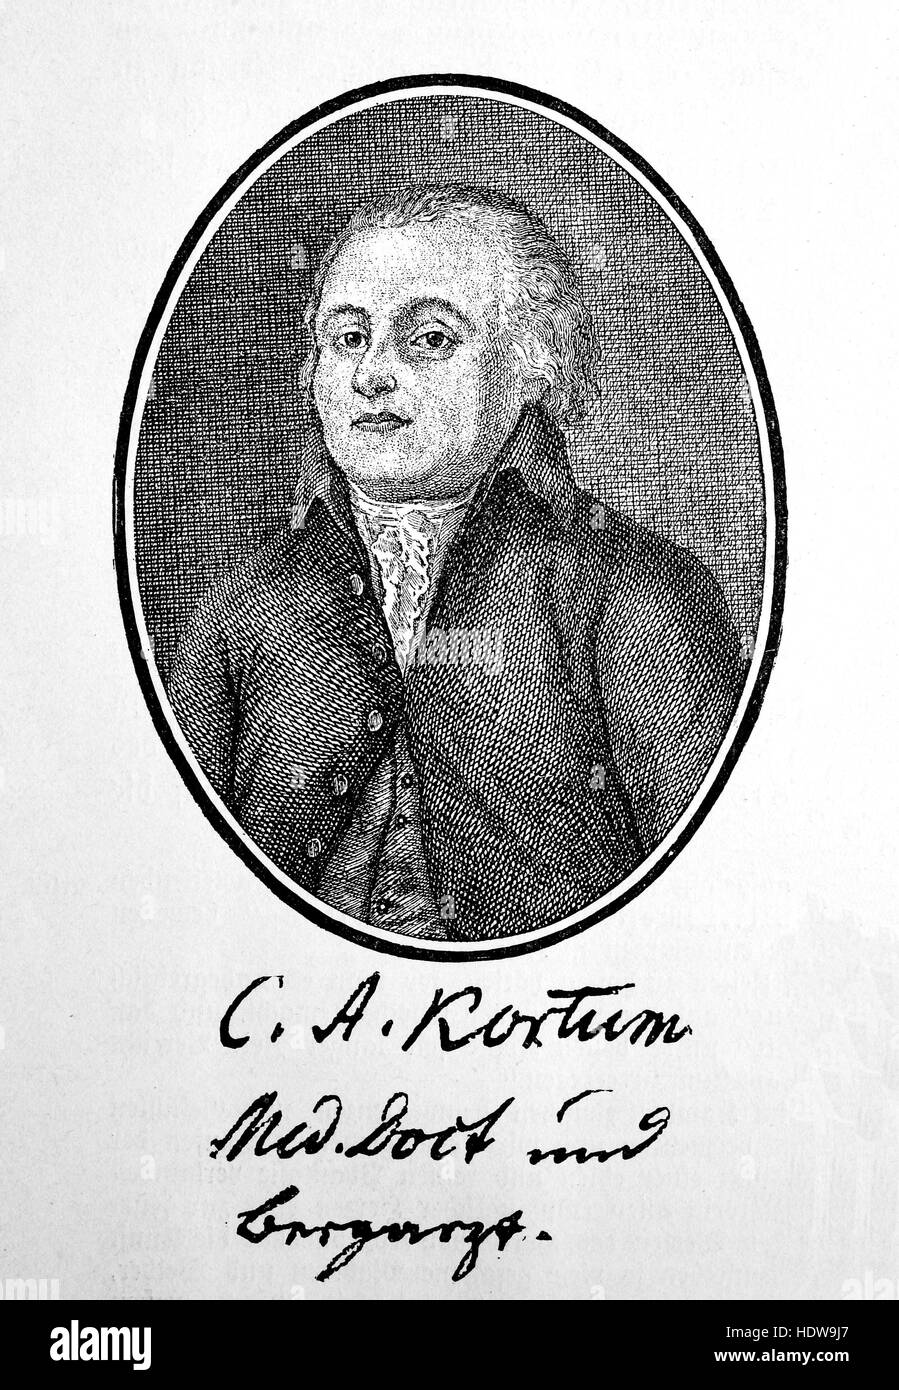 Carl Arnold Kortum, 1745-1824, a German physician, but best known for his writing and poetry, woodcut from the year - Stock Image